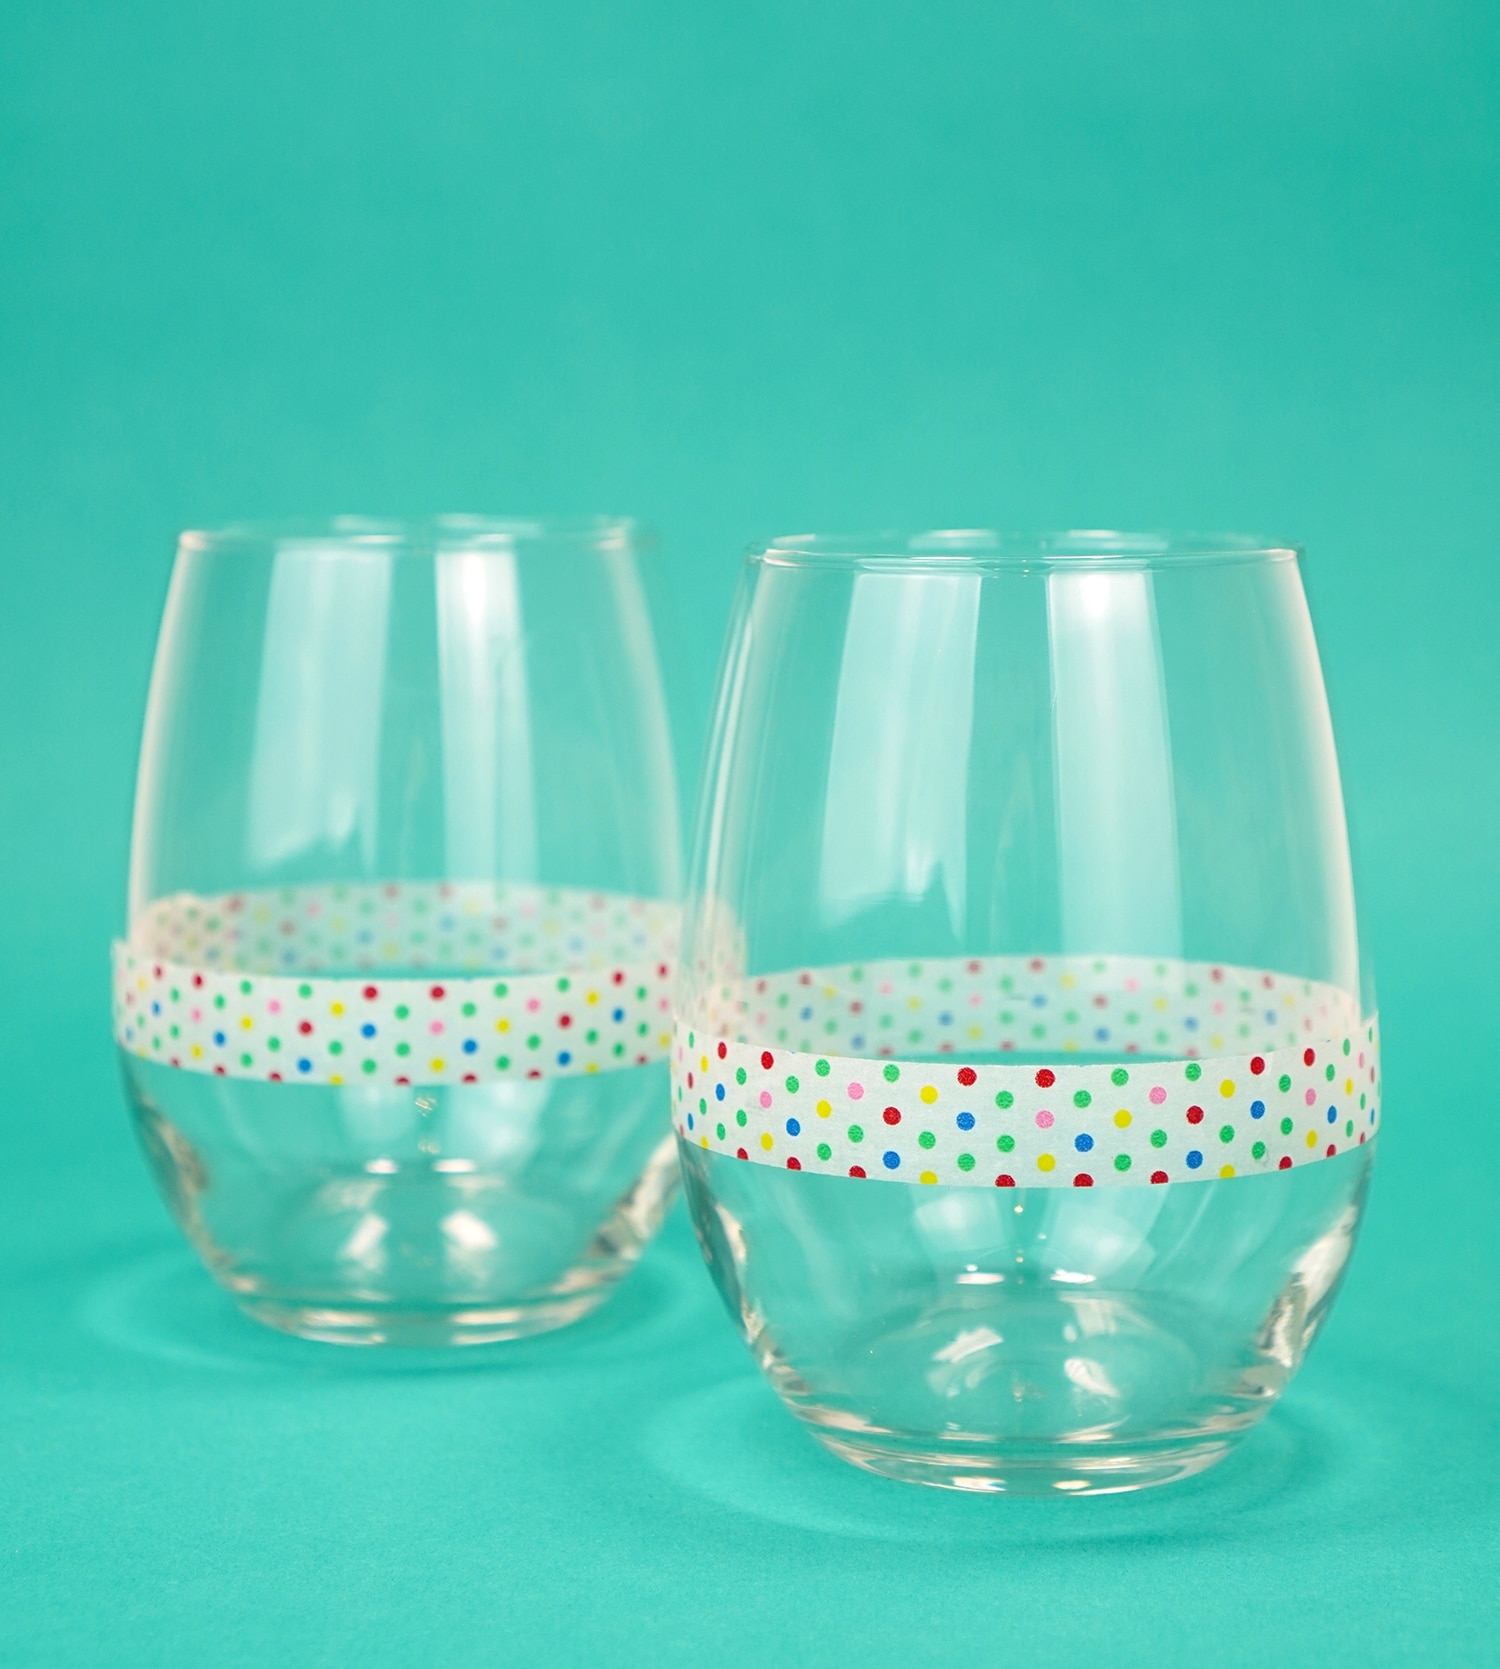 Two stemless wine glasses on teal background with a band of polka dot washi tape around each glass